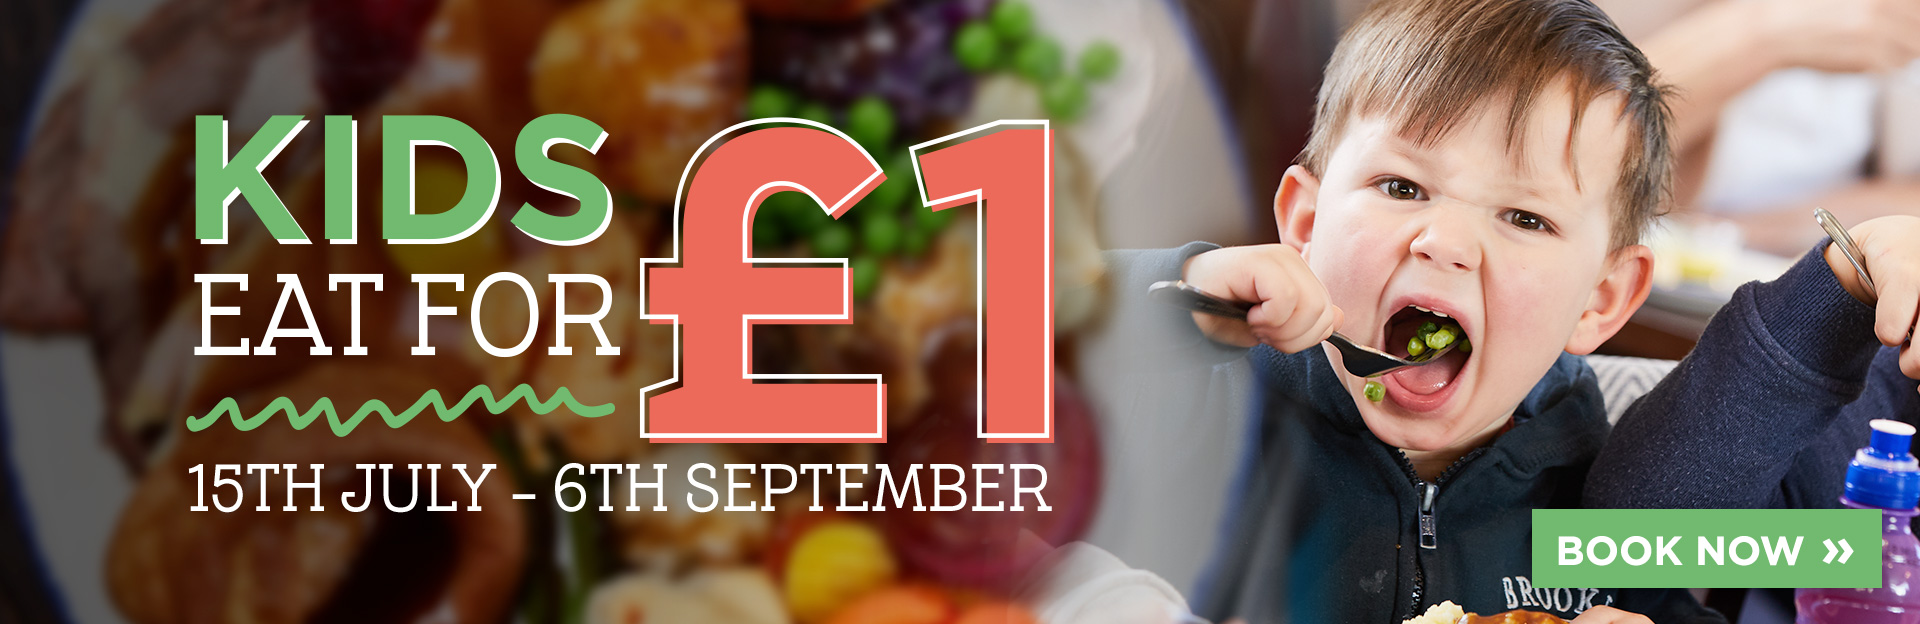 Kids eat for £1 at The Sportsman